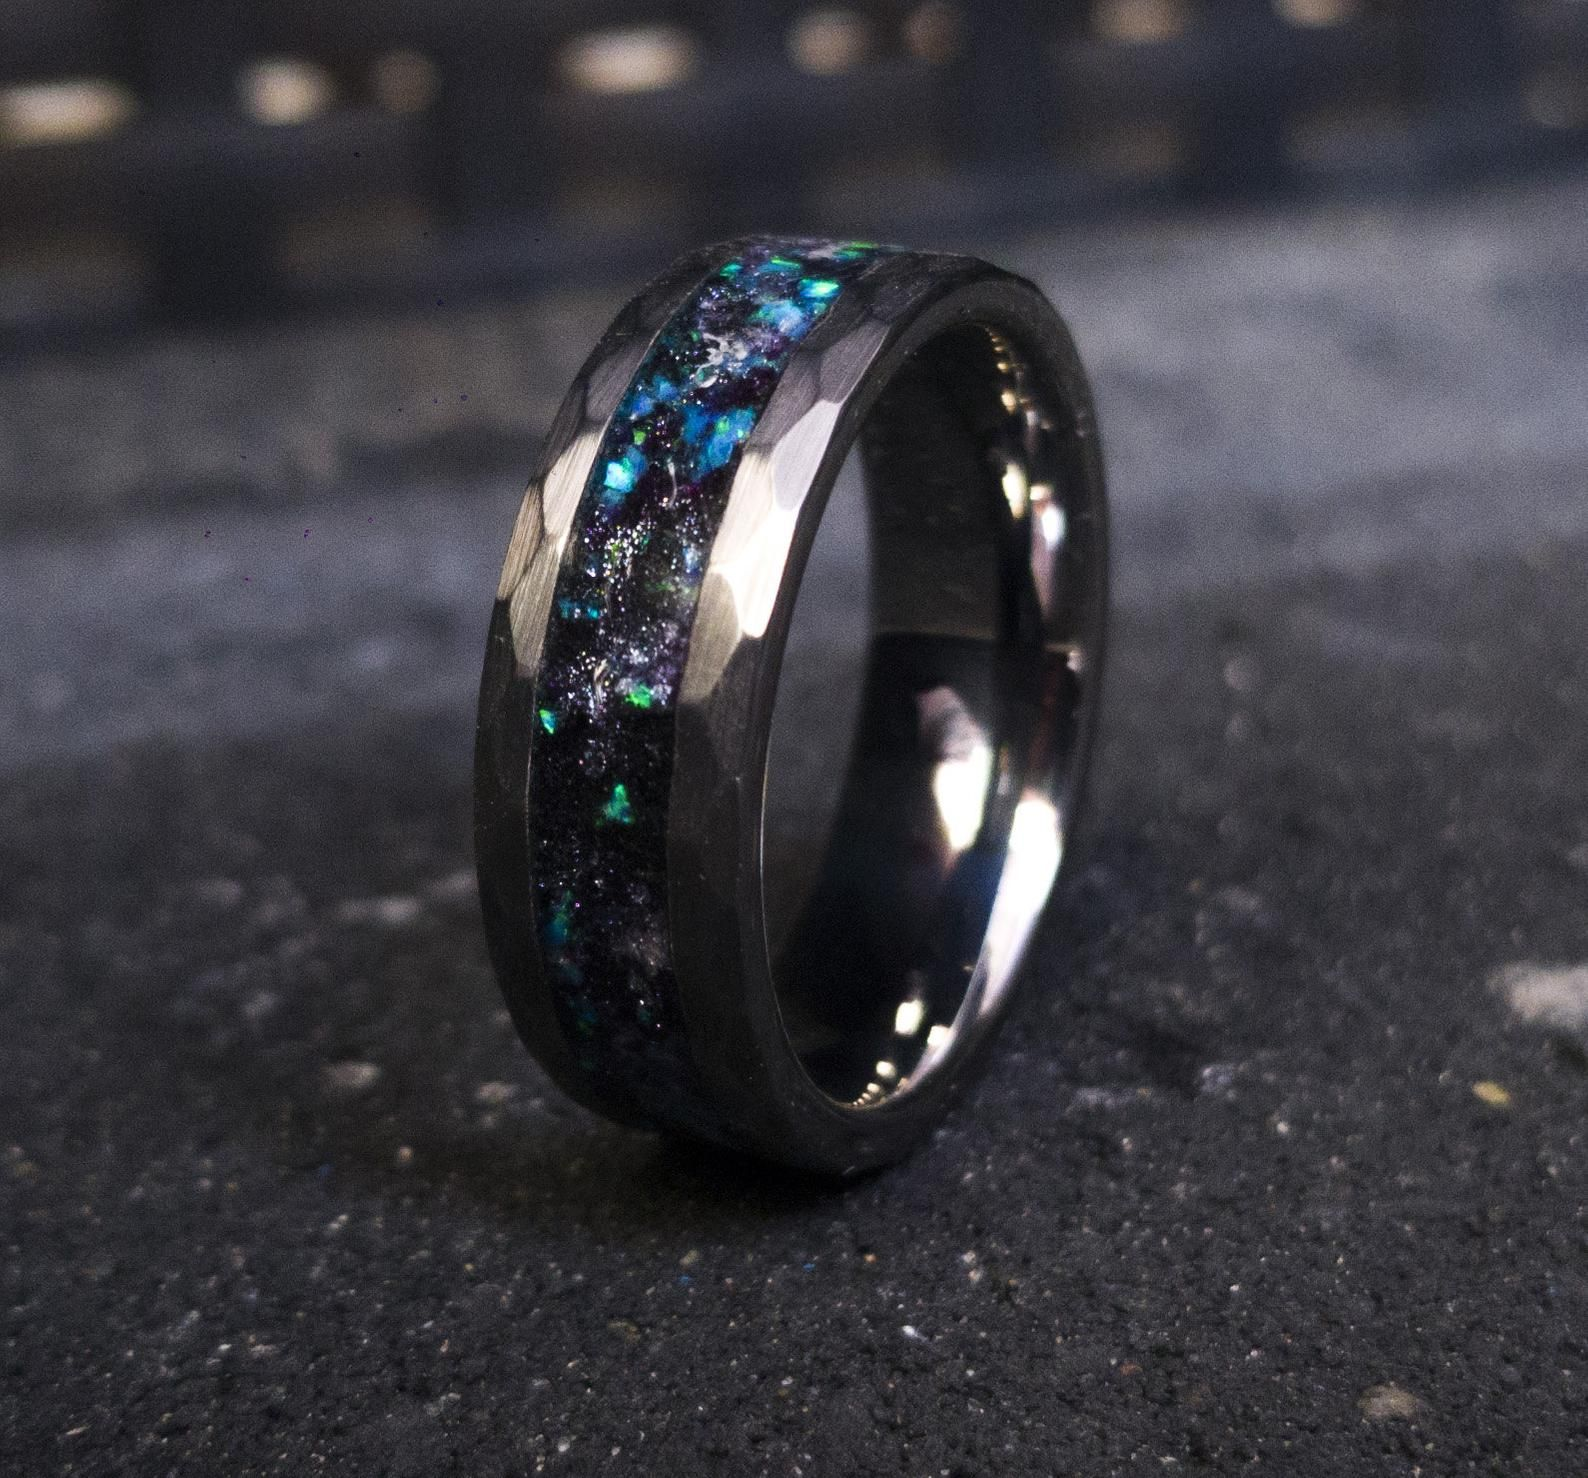 Sale Mens Opal Ring Galaxy Opal Tungsten Ring For Men Meteorite Opal Ring Hammered Wedding Band Men Ring With Opal Inlay Engagement Rings Opal Tungsten Mens Rings Men Diamond Ring